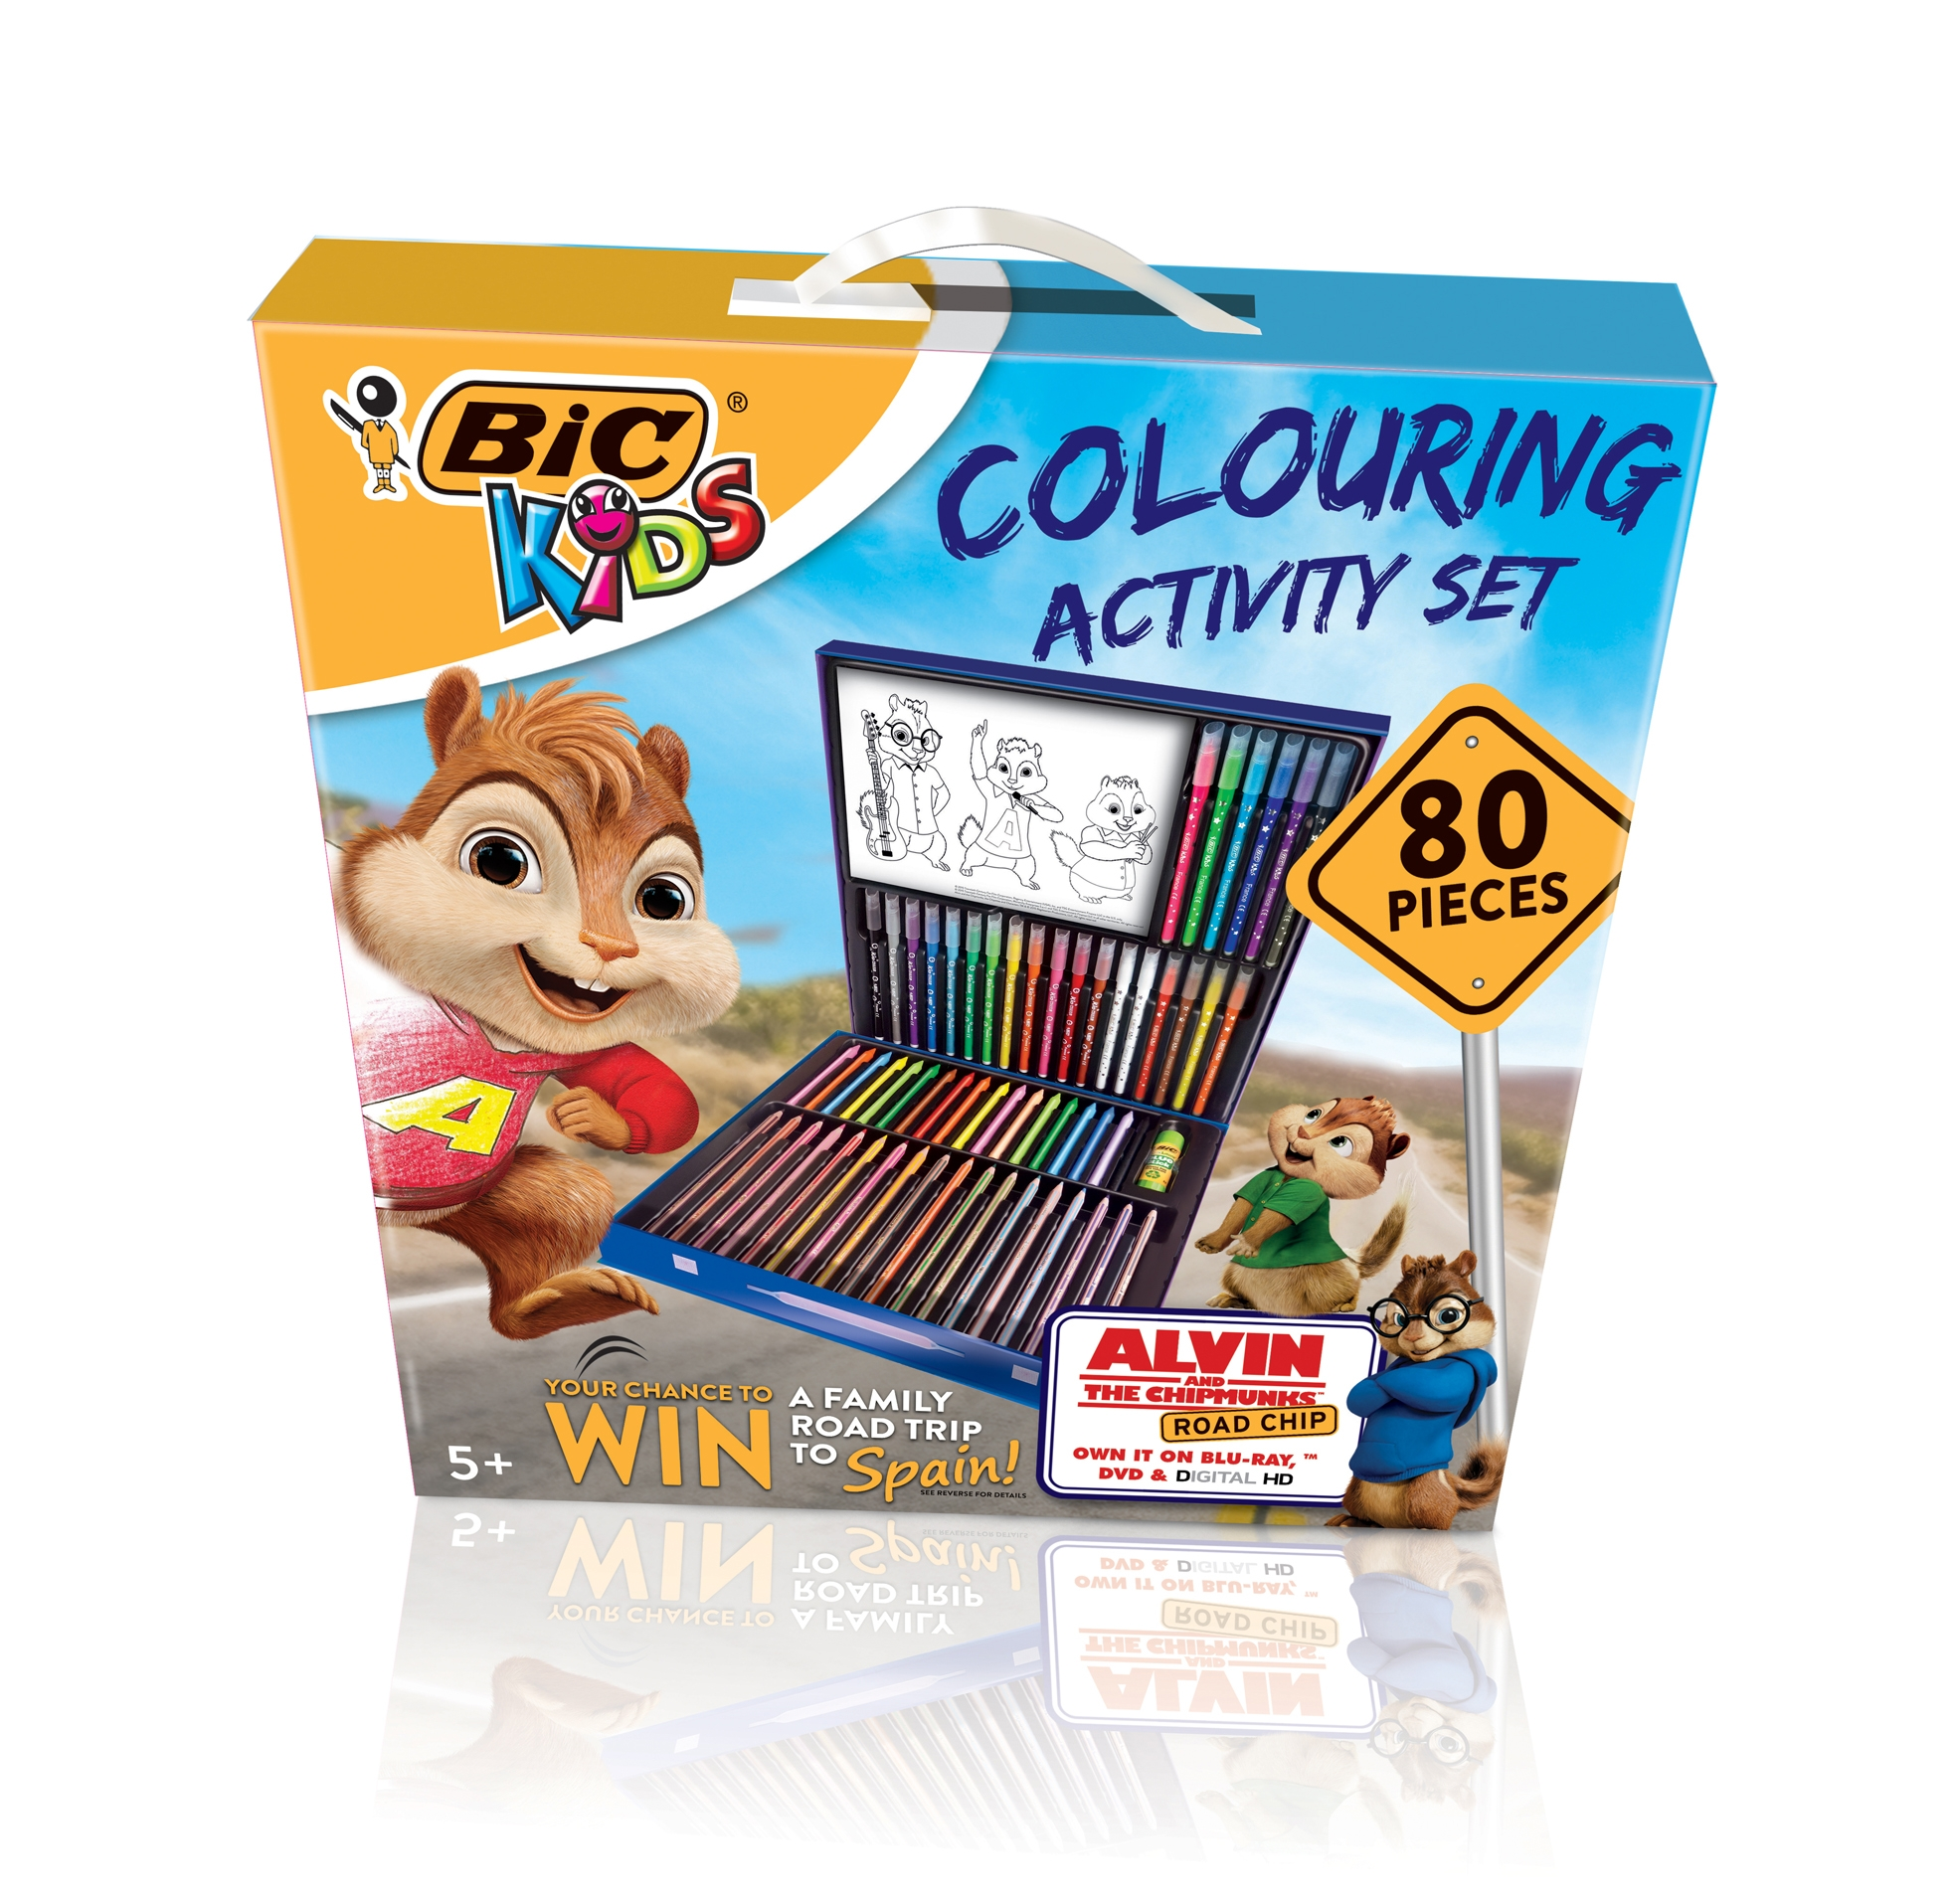 The BIC® Kids Colouring Activity Set and Colouring Wallet